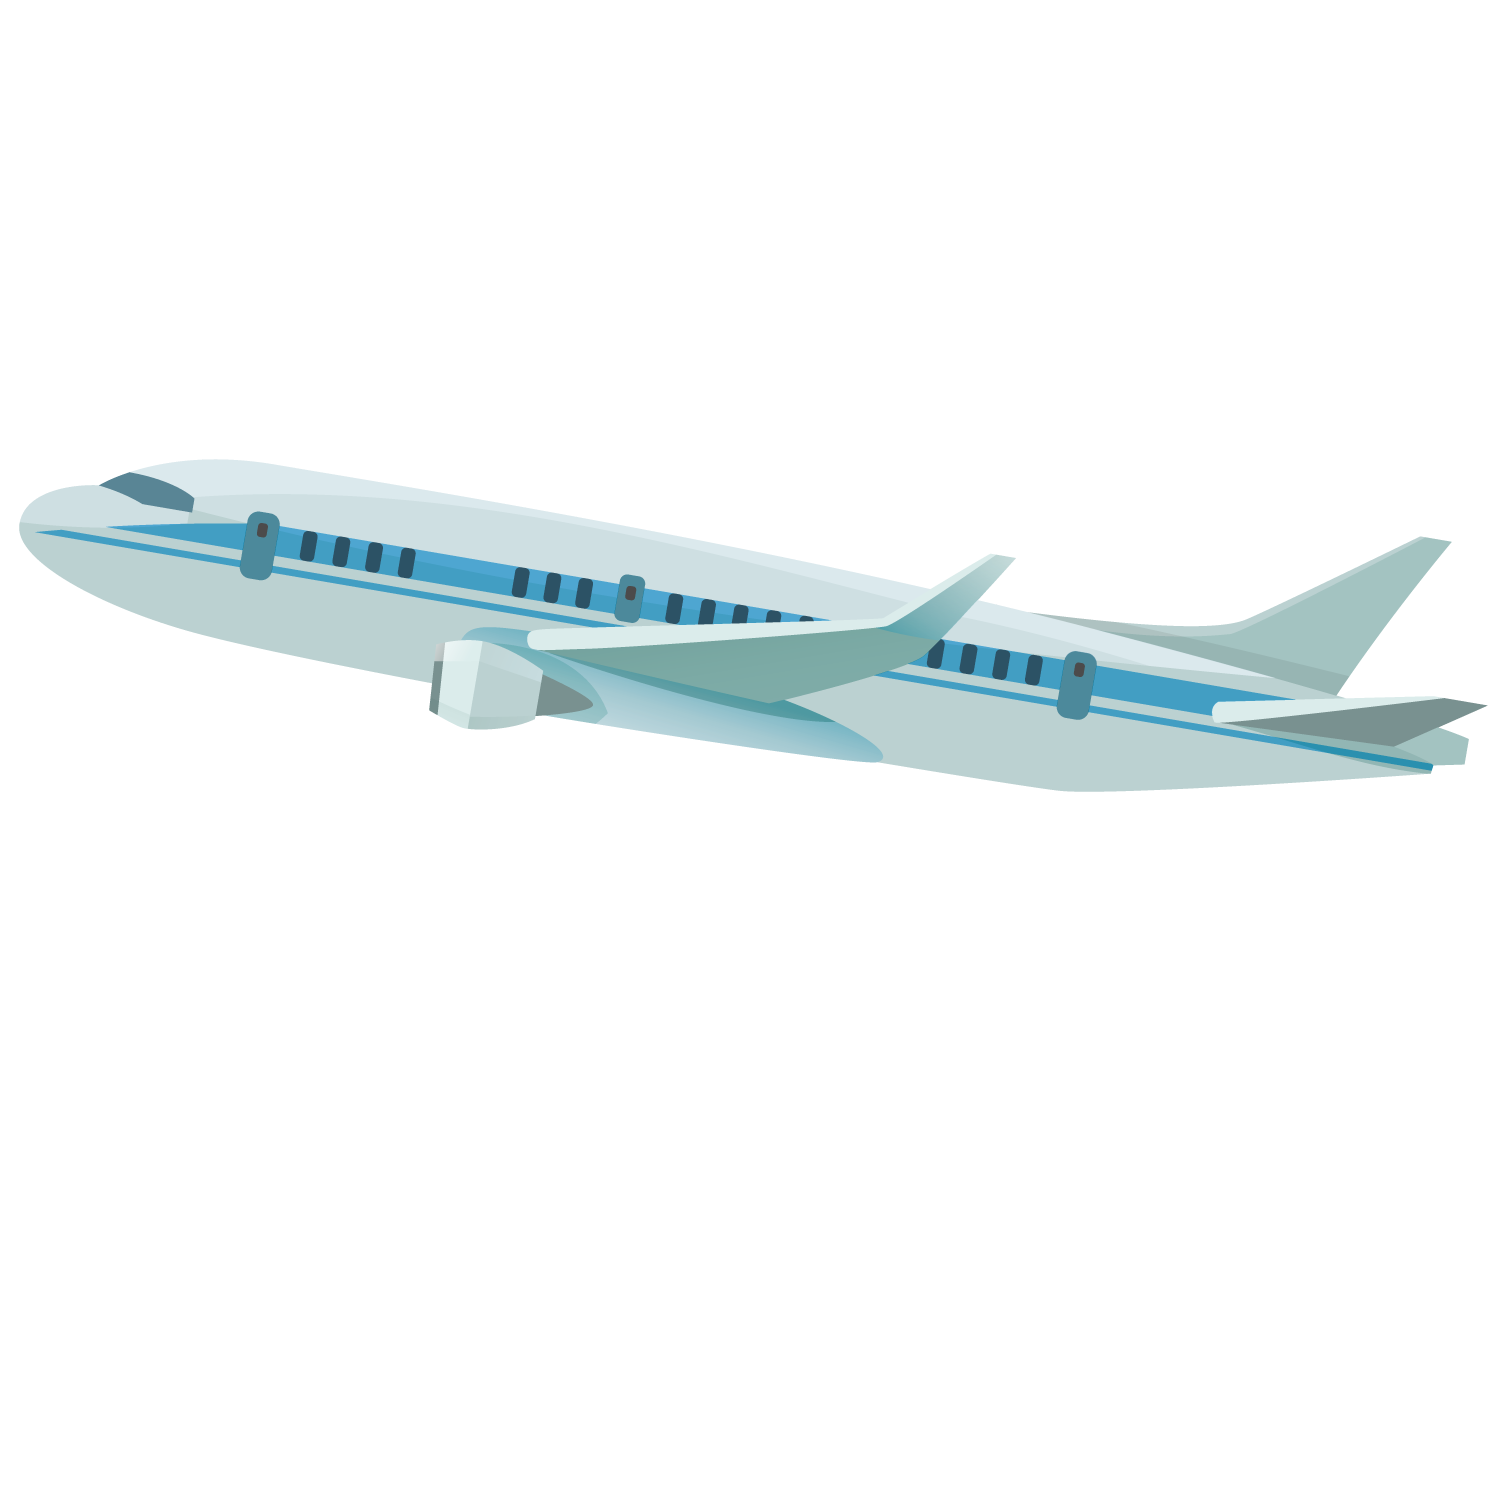 Aircraft vector airplane drawing. Wide body flying plane